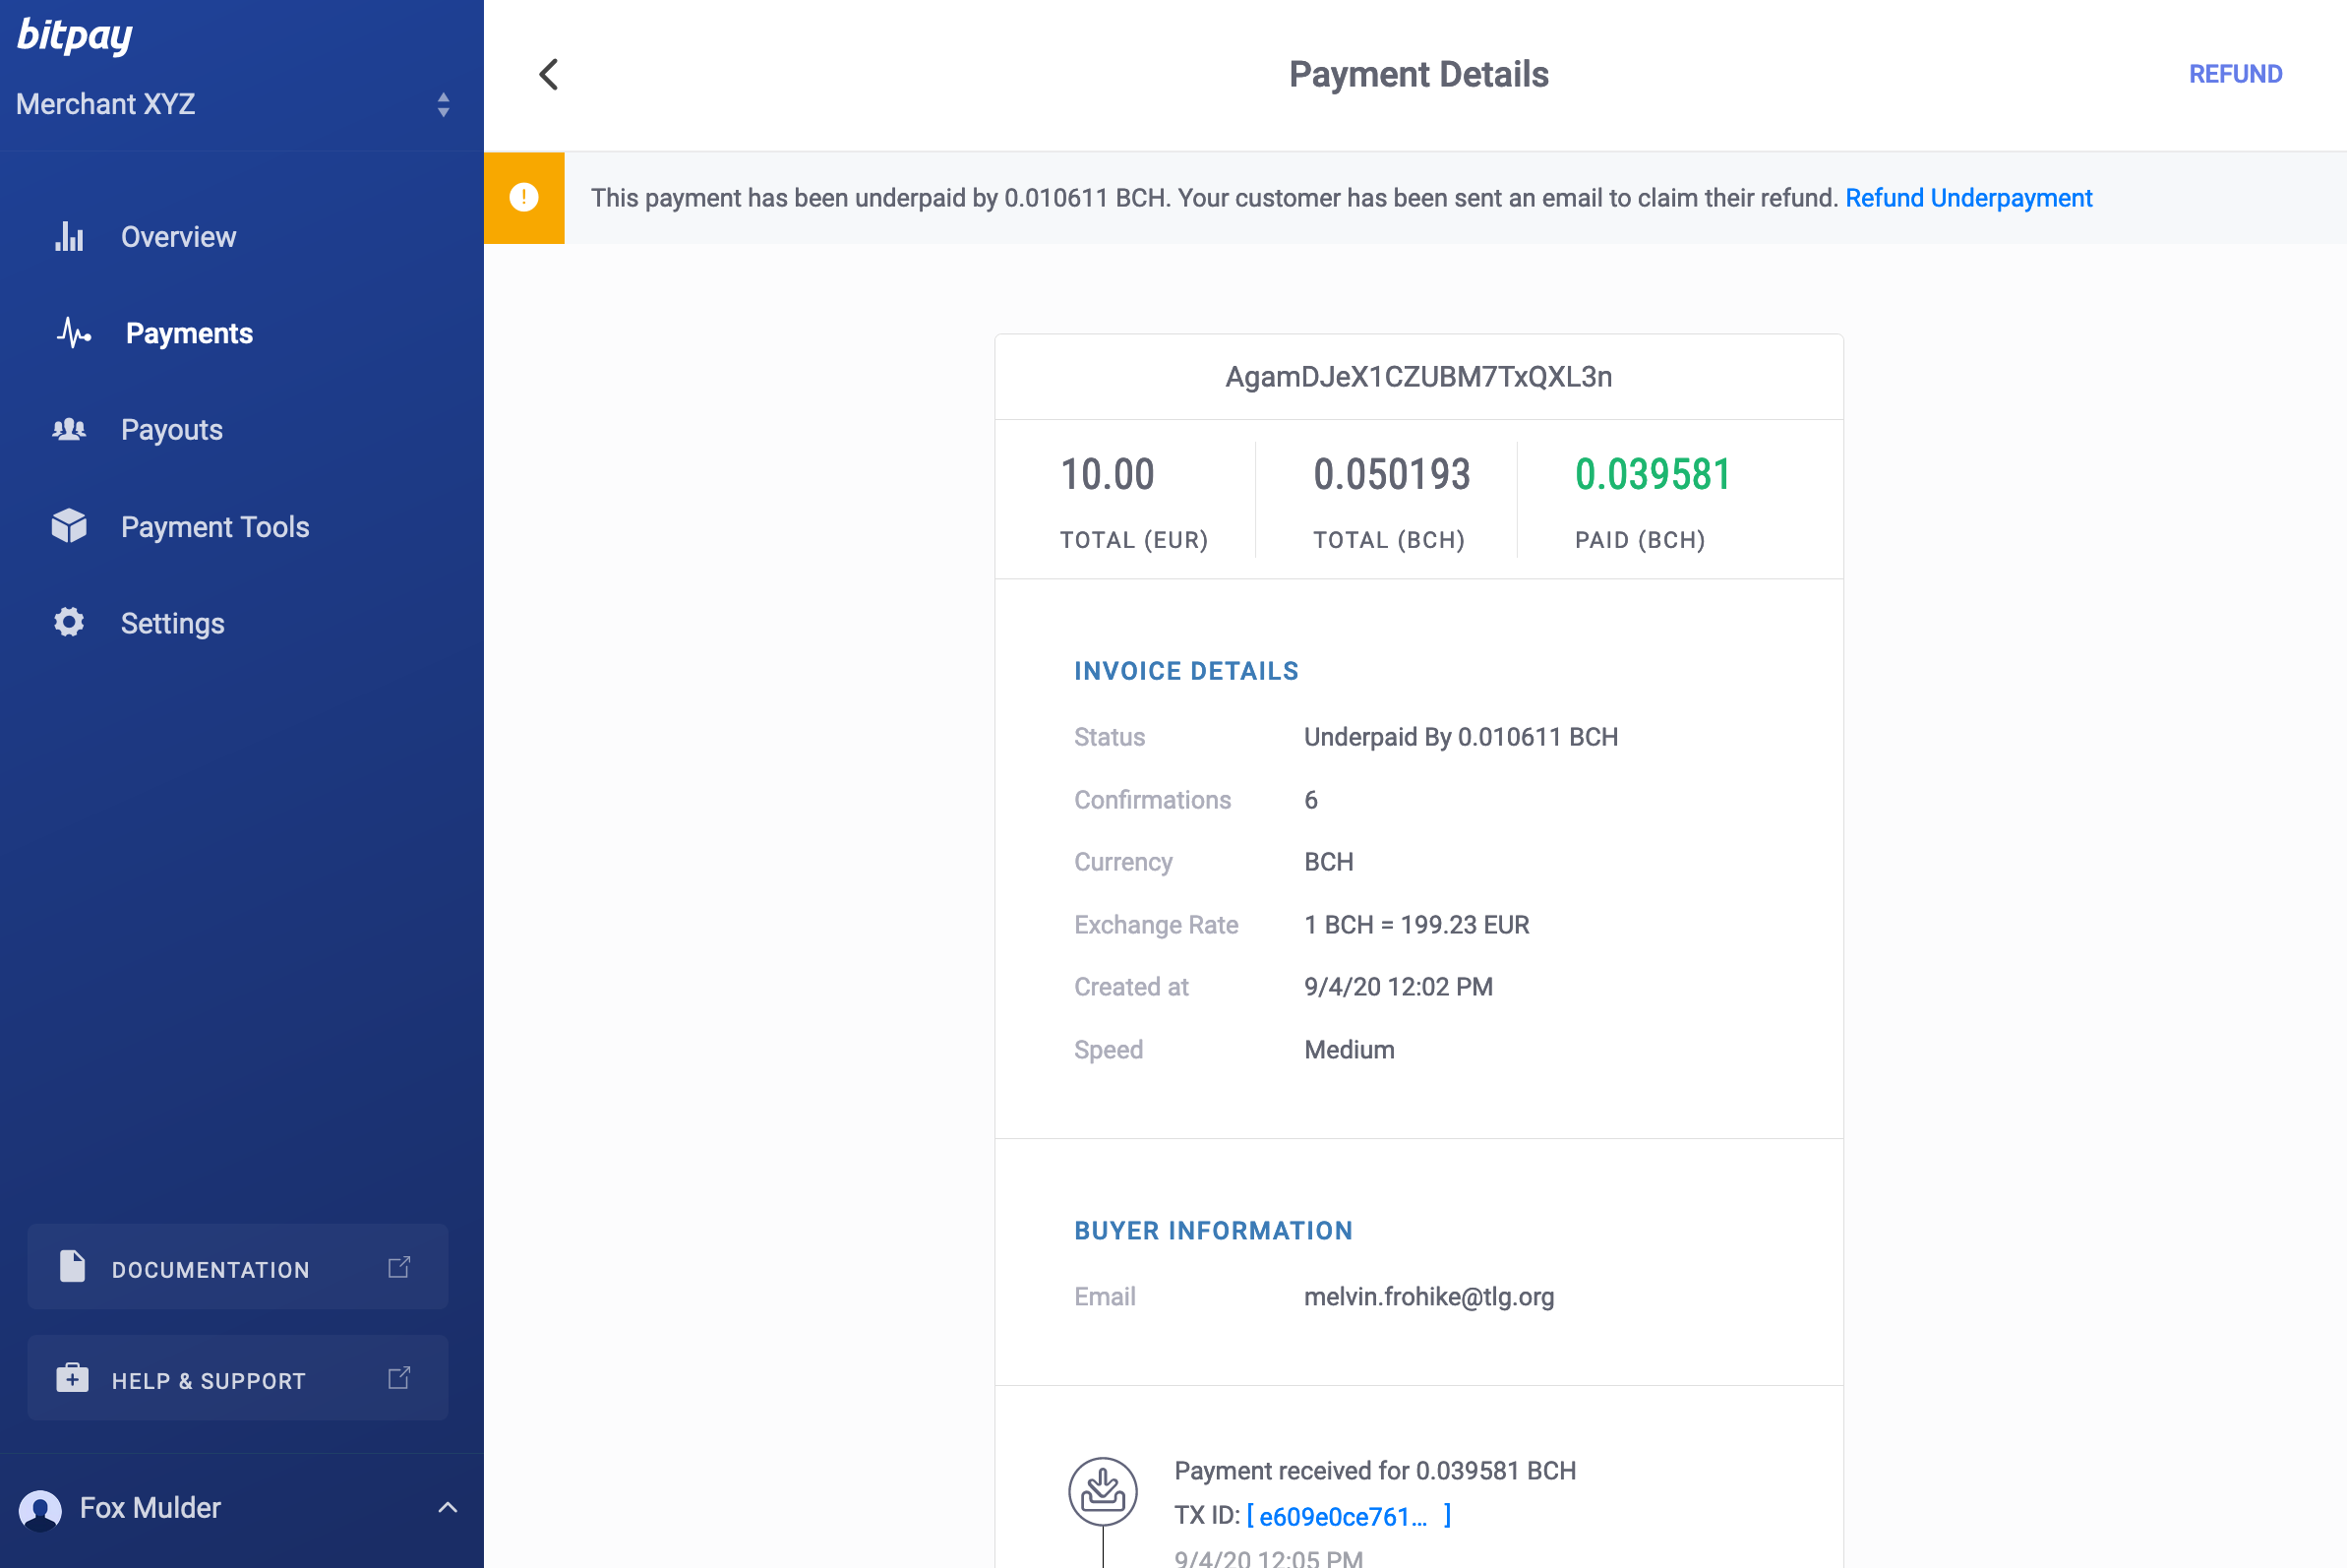 dashboard_payment_details.png